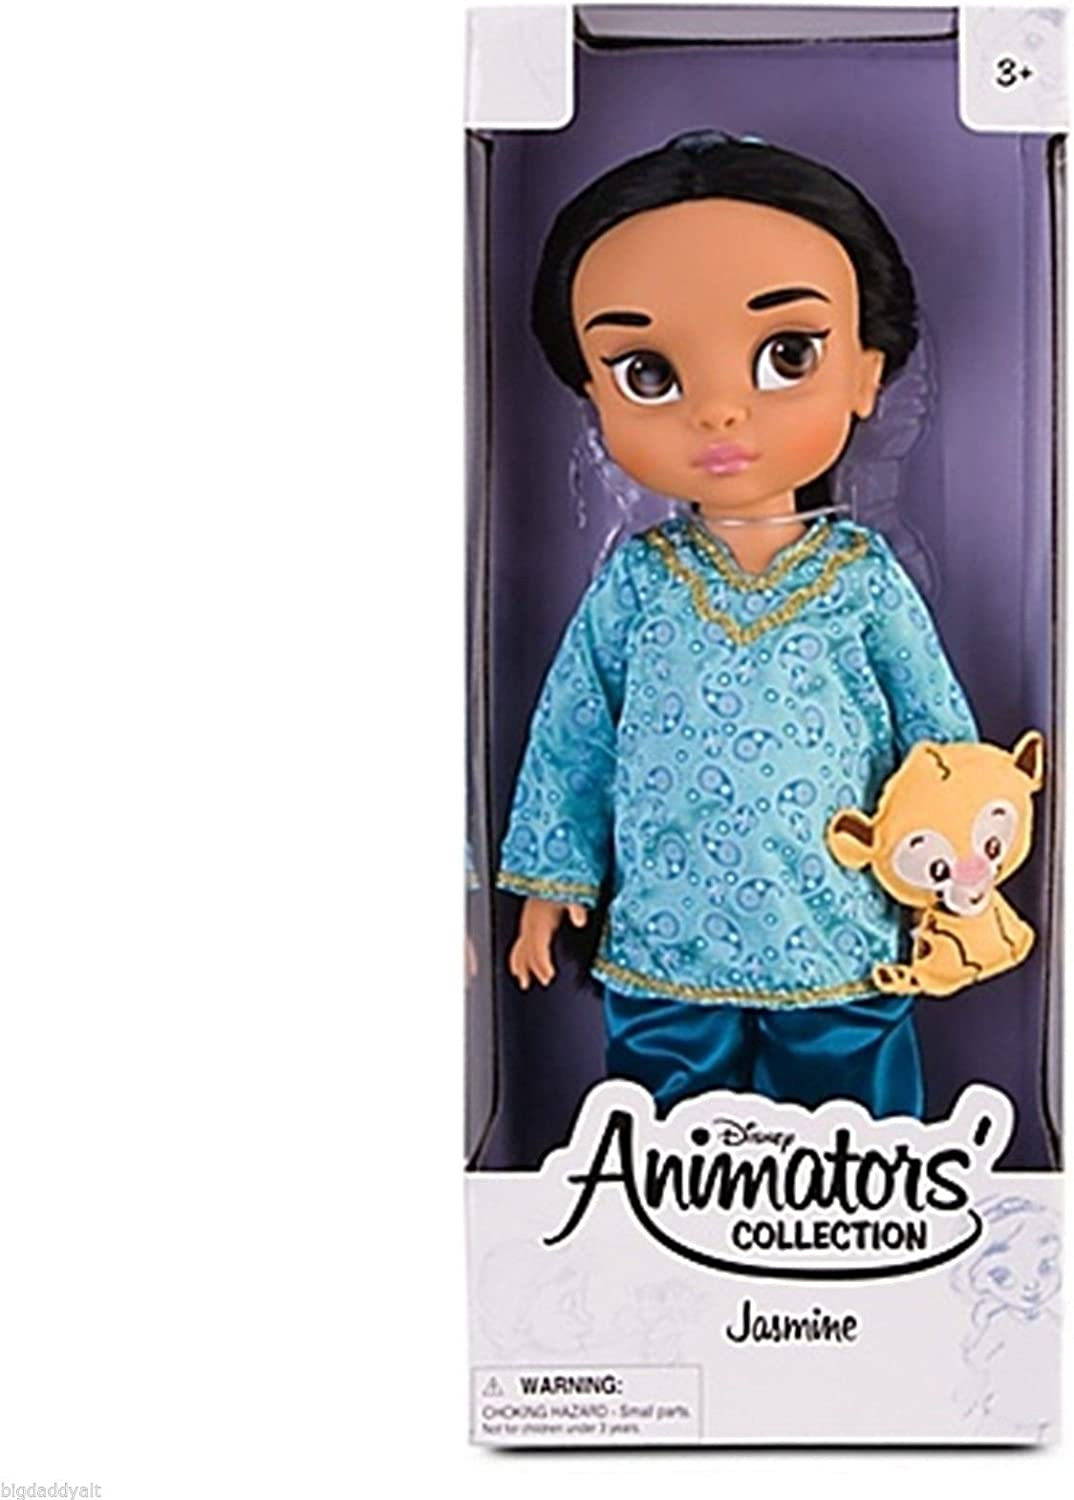 B005T6MO22 Disney Princess Animators' Collection Toddler Doll 16'' H - Jasmine with Plush Friend Raja 719JFLsZzML